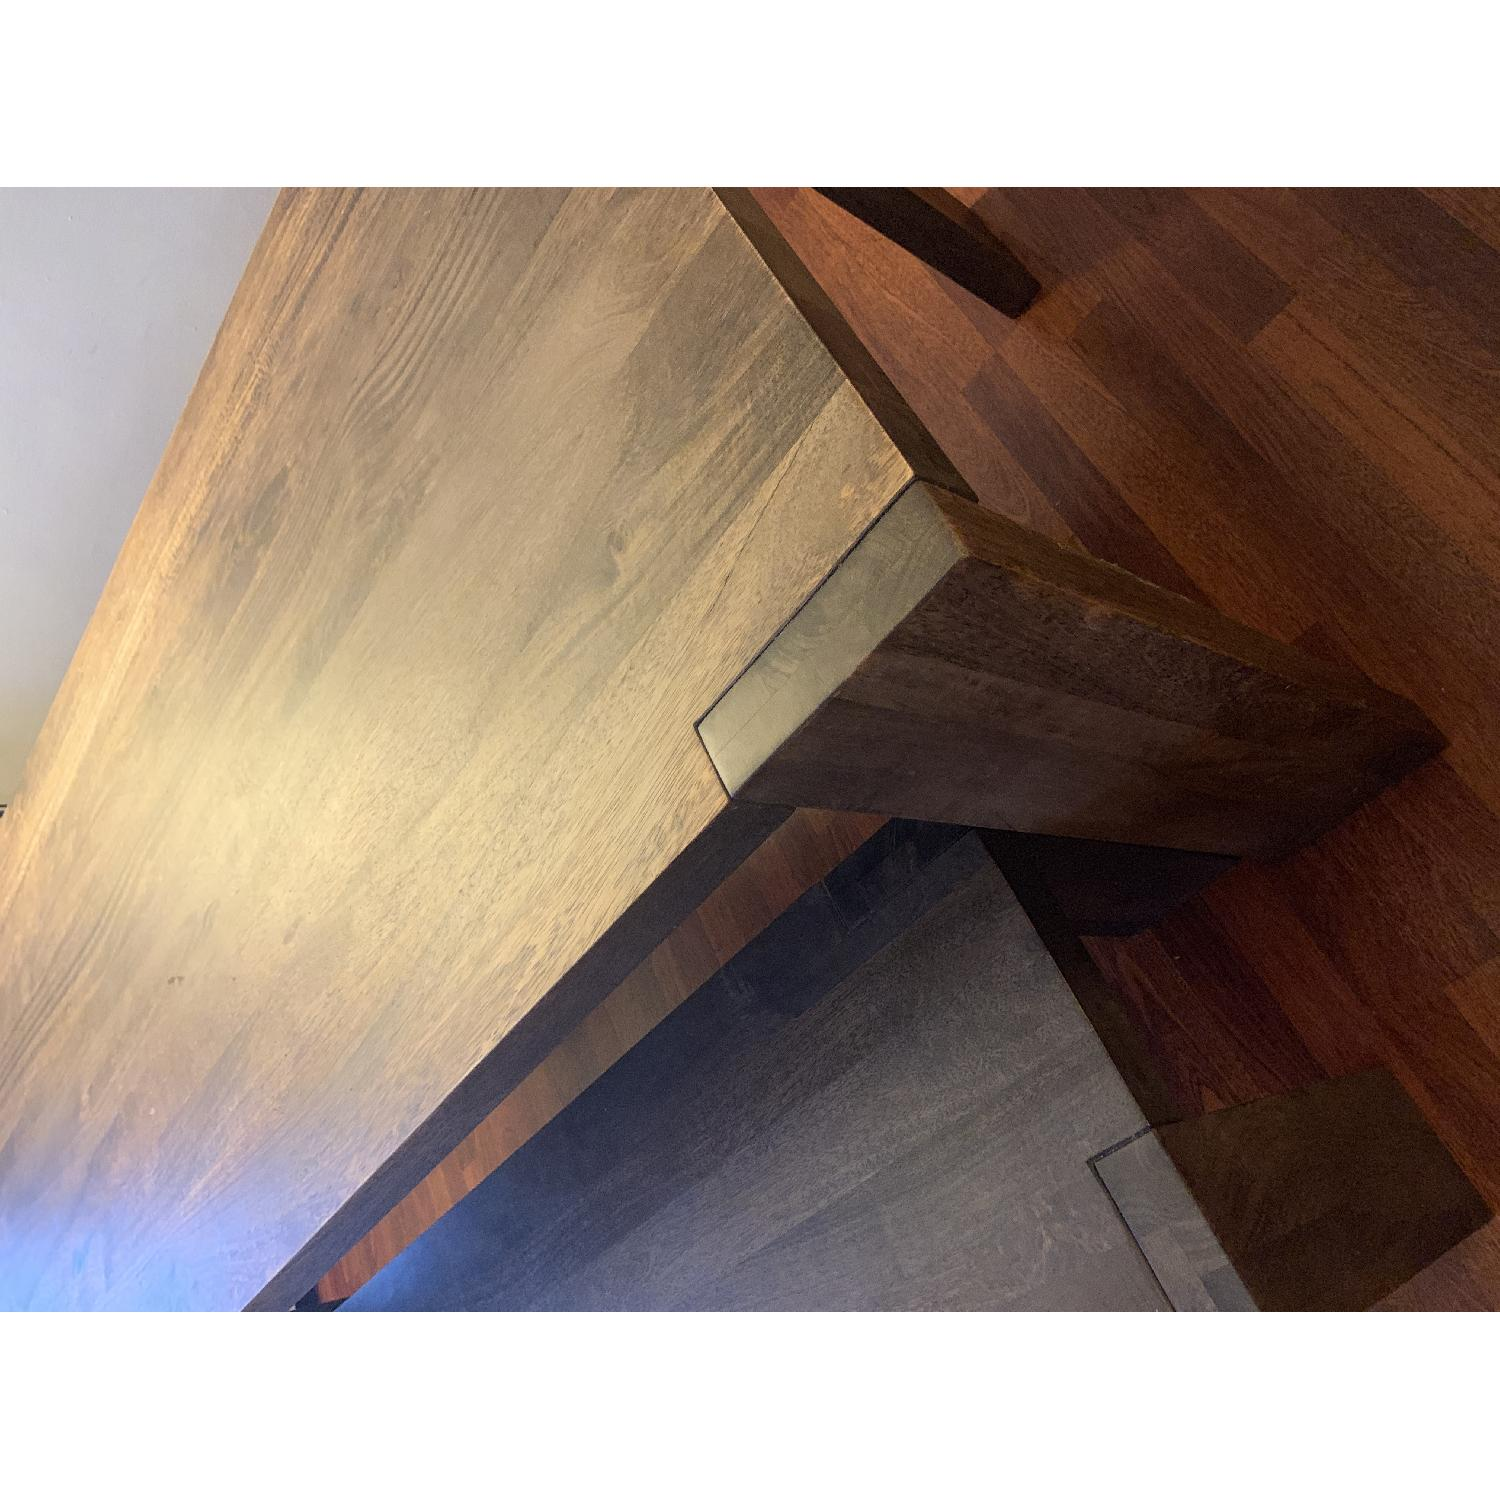 Crate & Barrel Big Sur Table w/ 1 Bench + 2 Leather Chairs-1